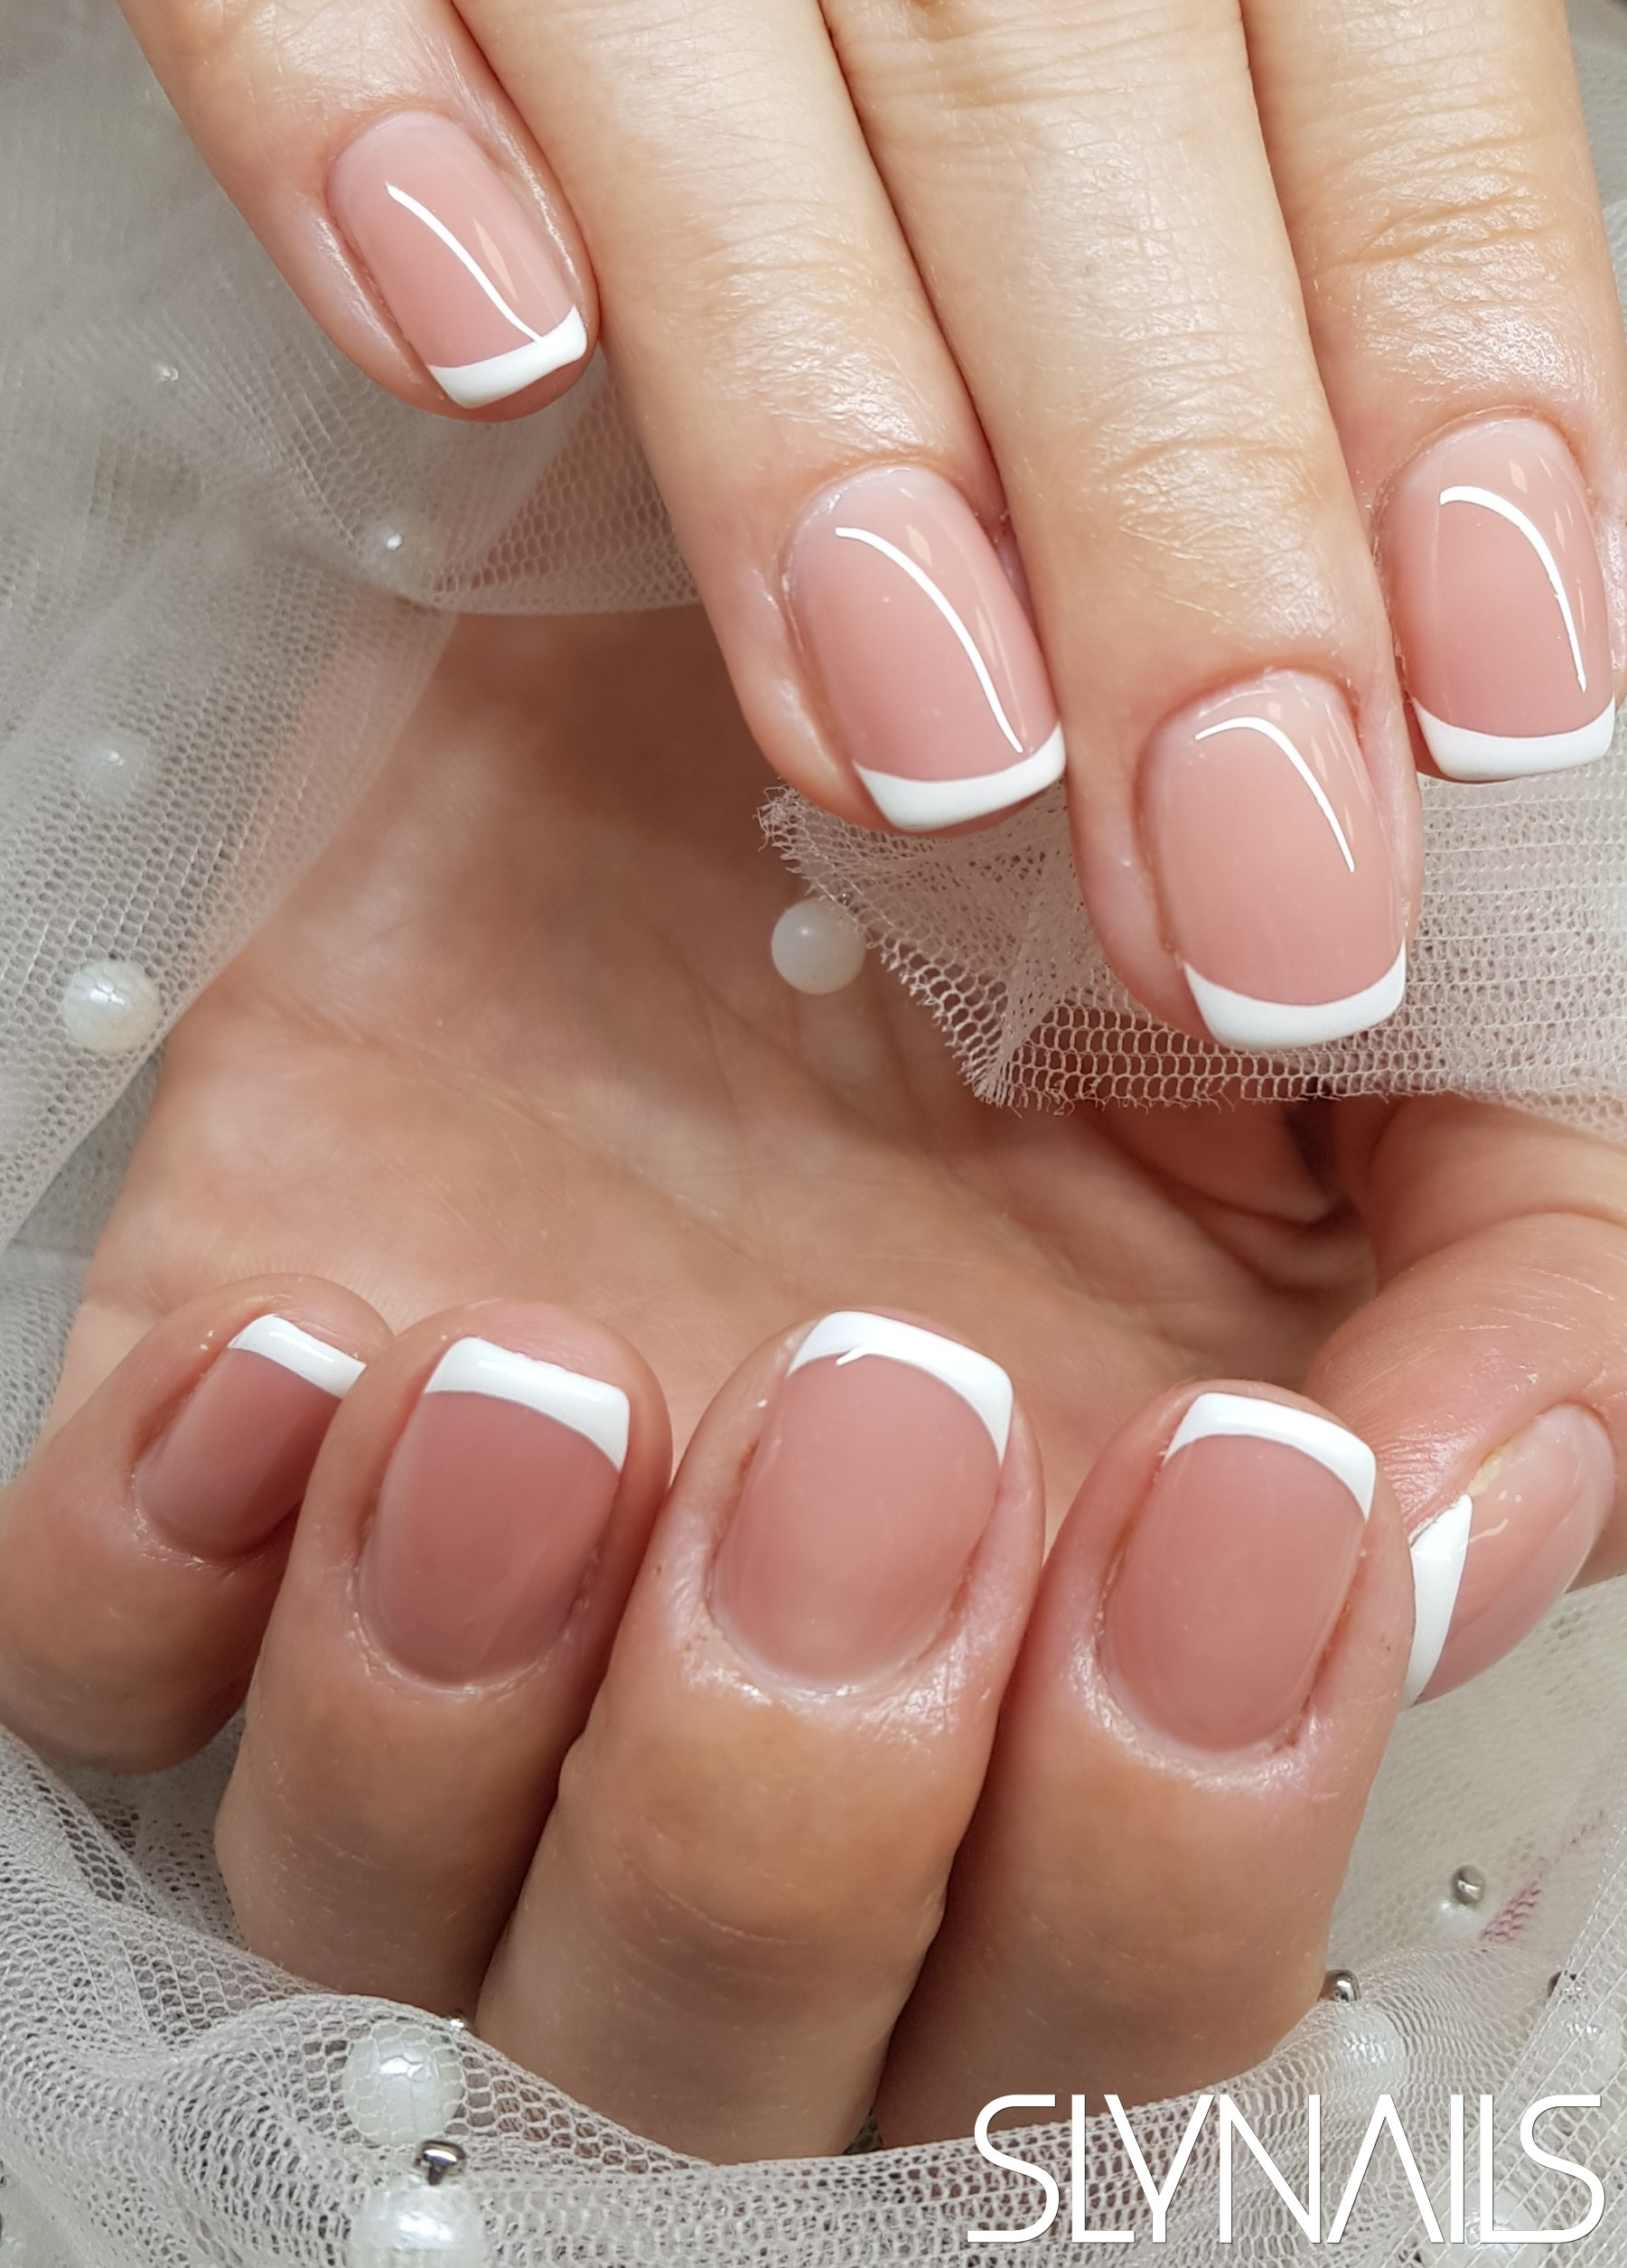 Gel-lac (gel polish), French, White, Square, Without decoration